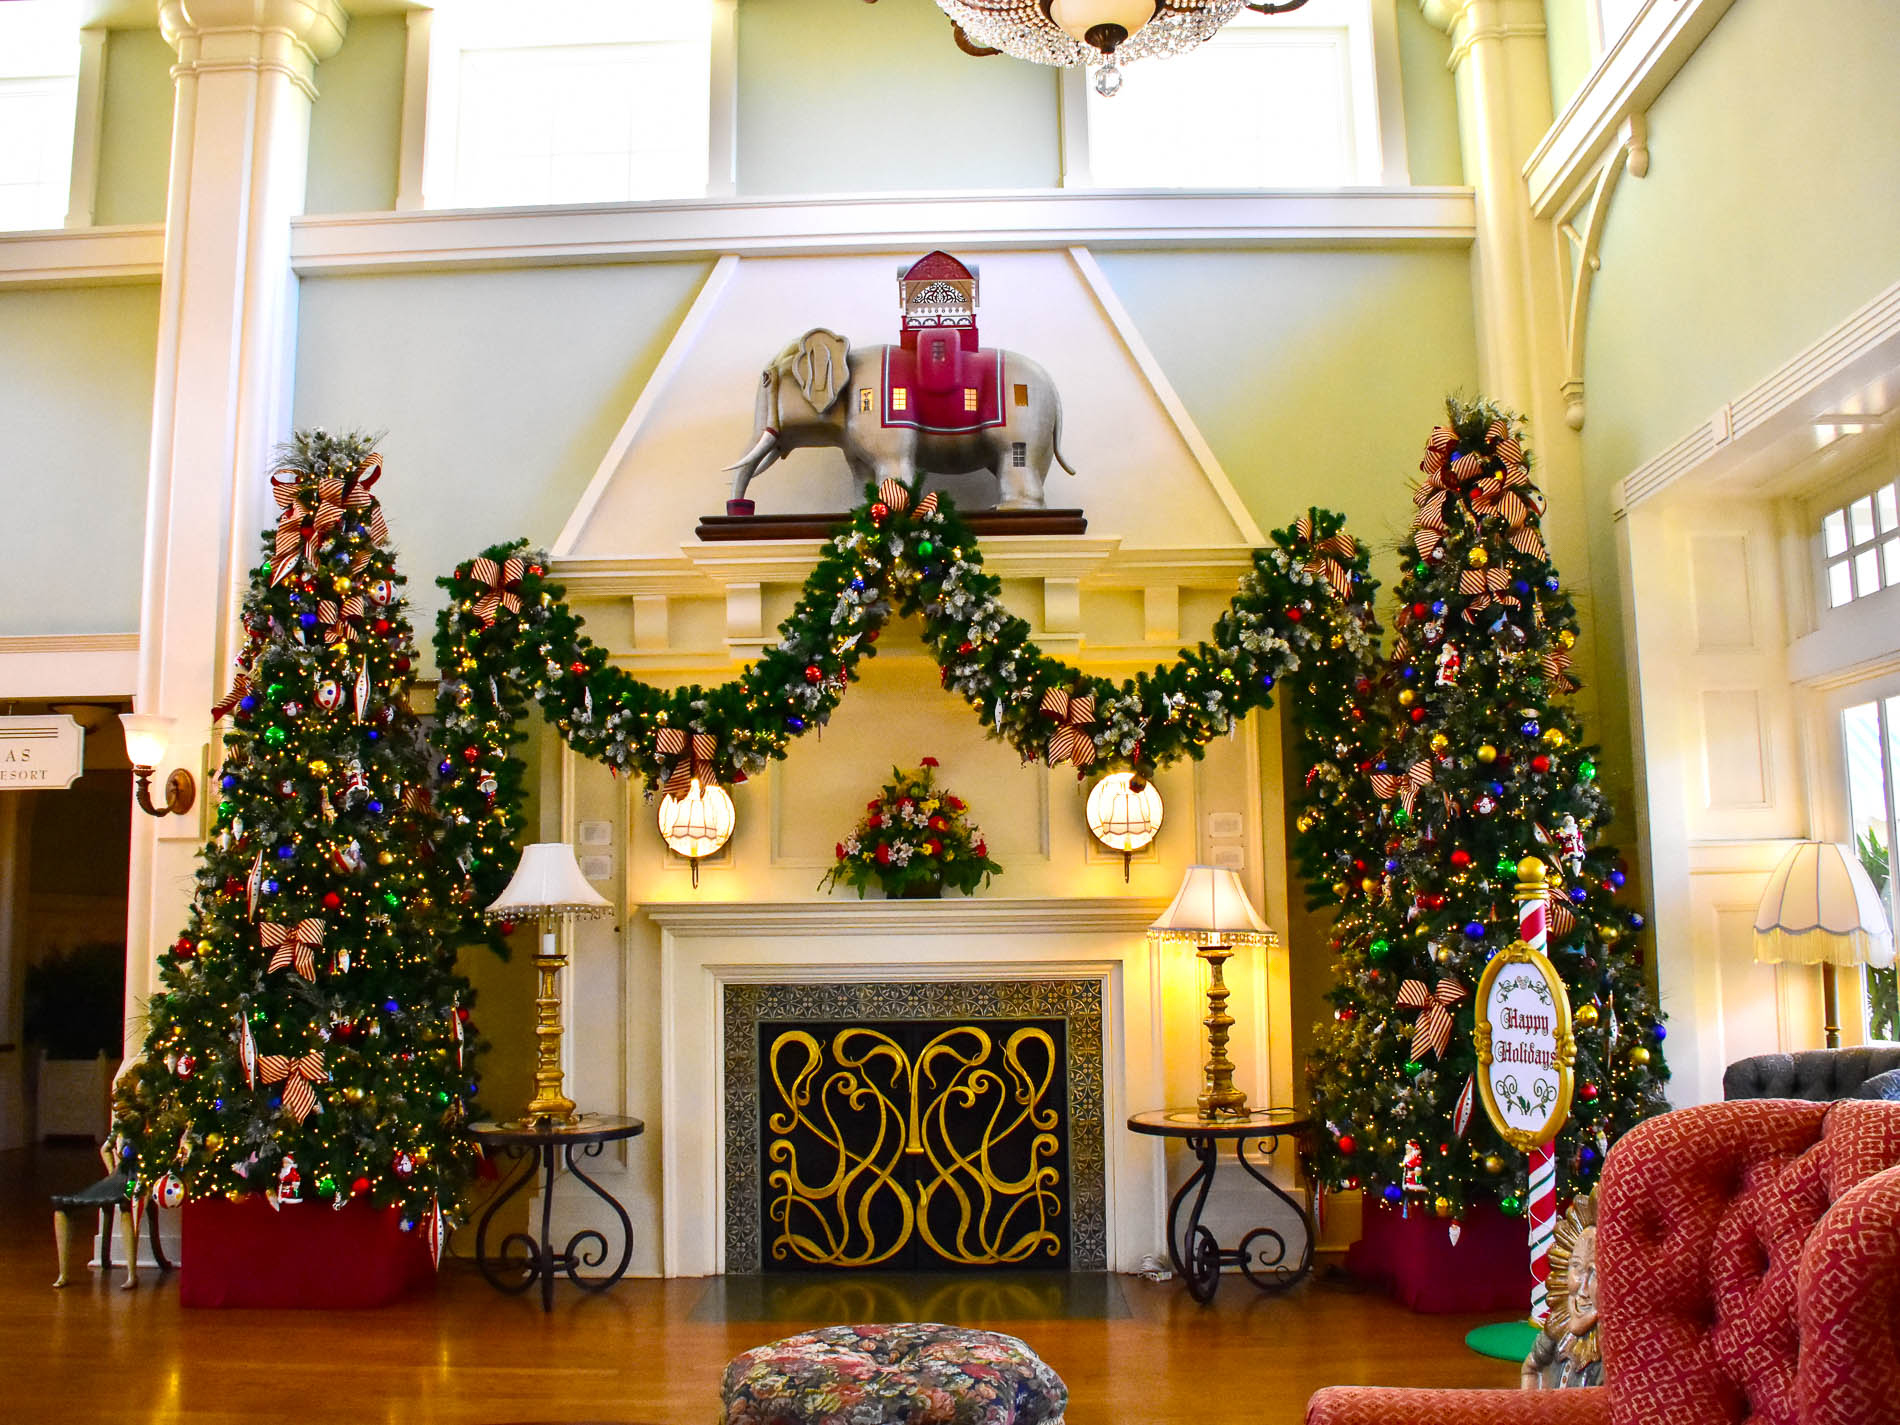 the fireplace mantel at disneys boardwalk inn is fully decorated for christmas photo by bonnie fink